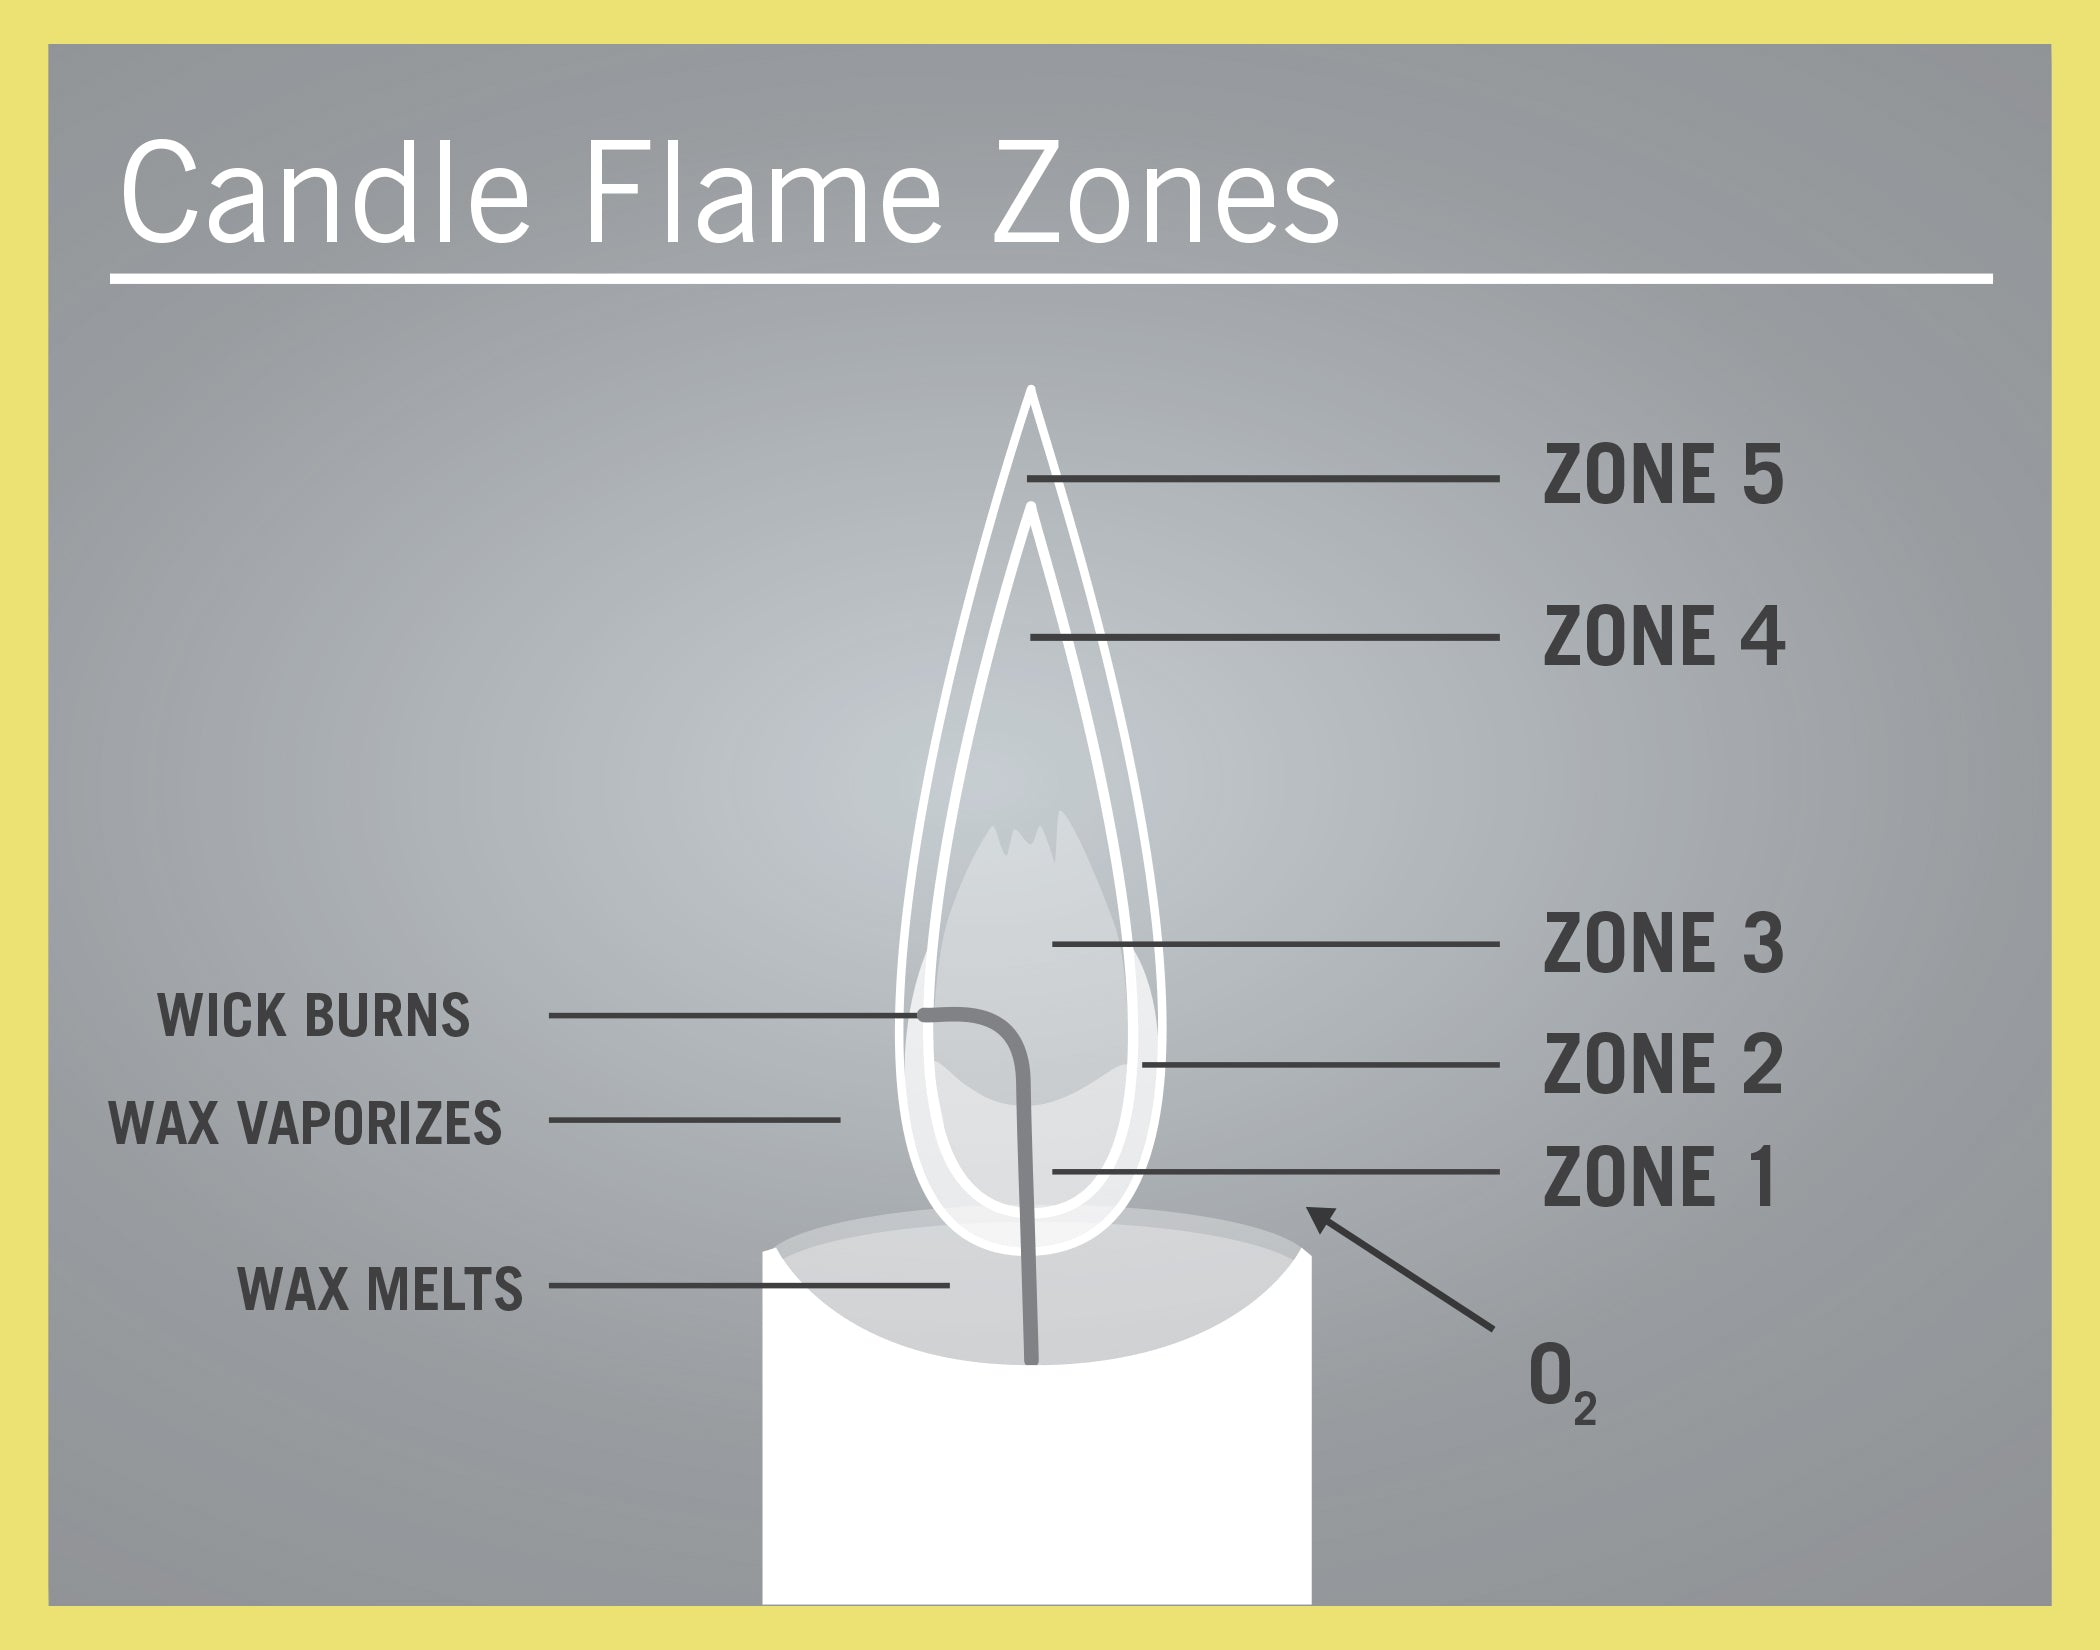 Candle flame zones diagram